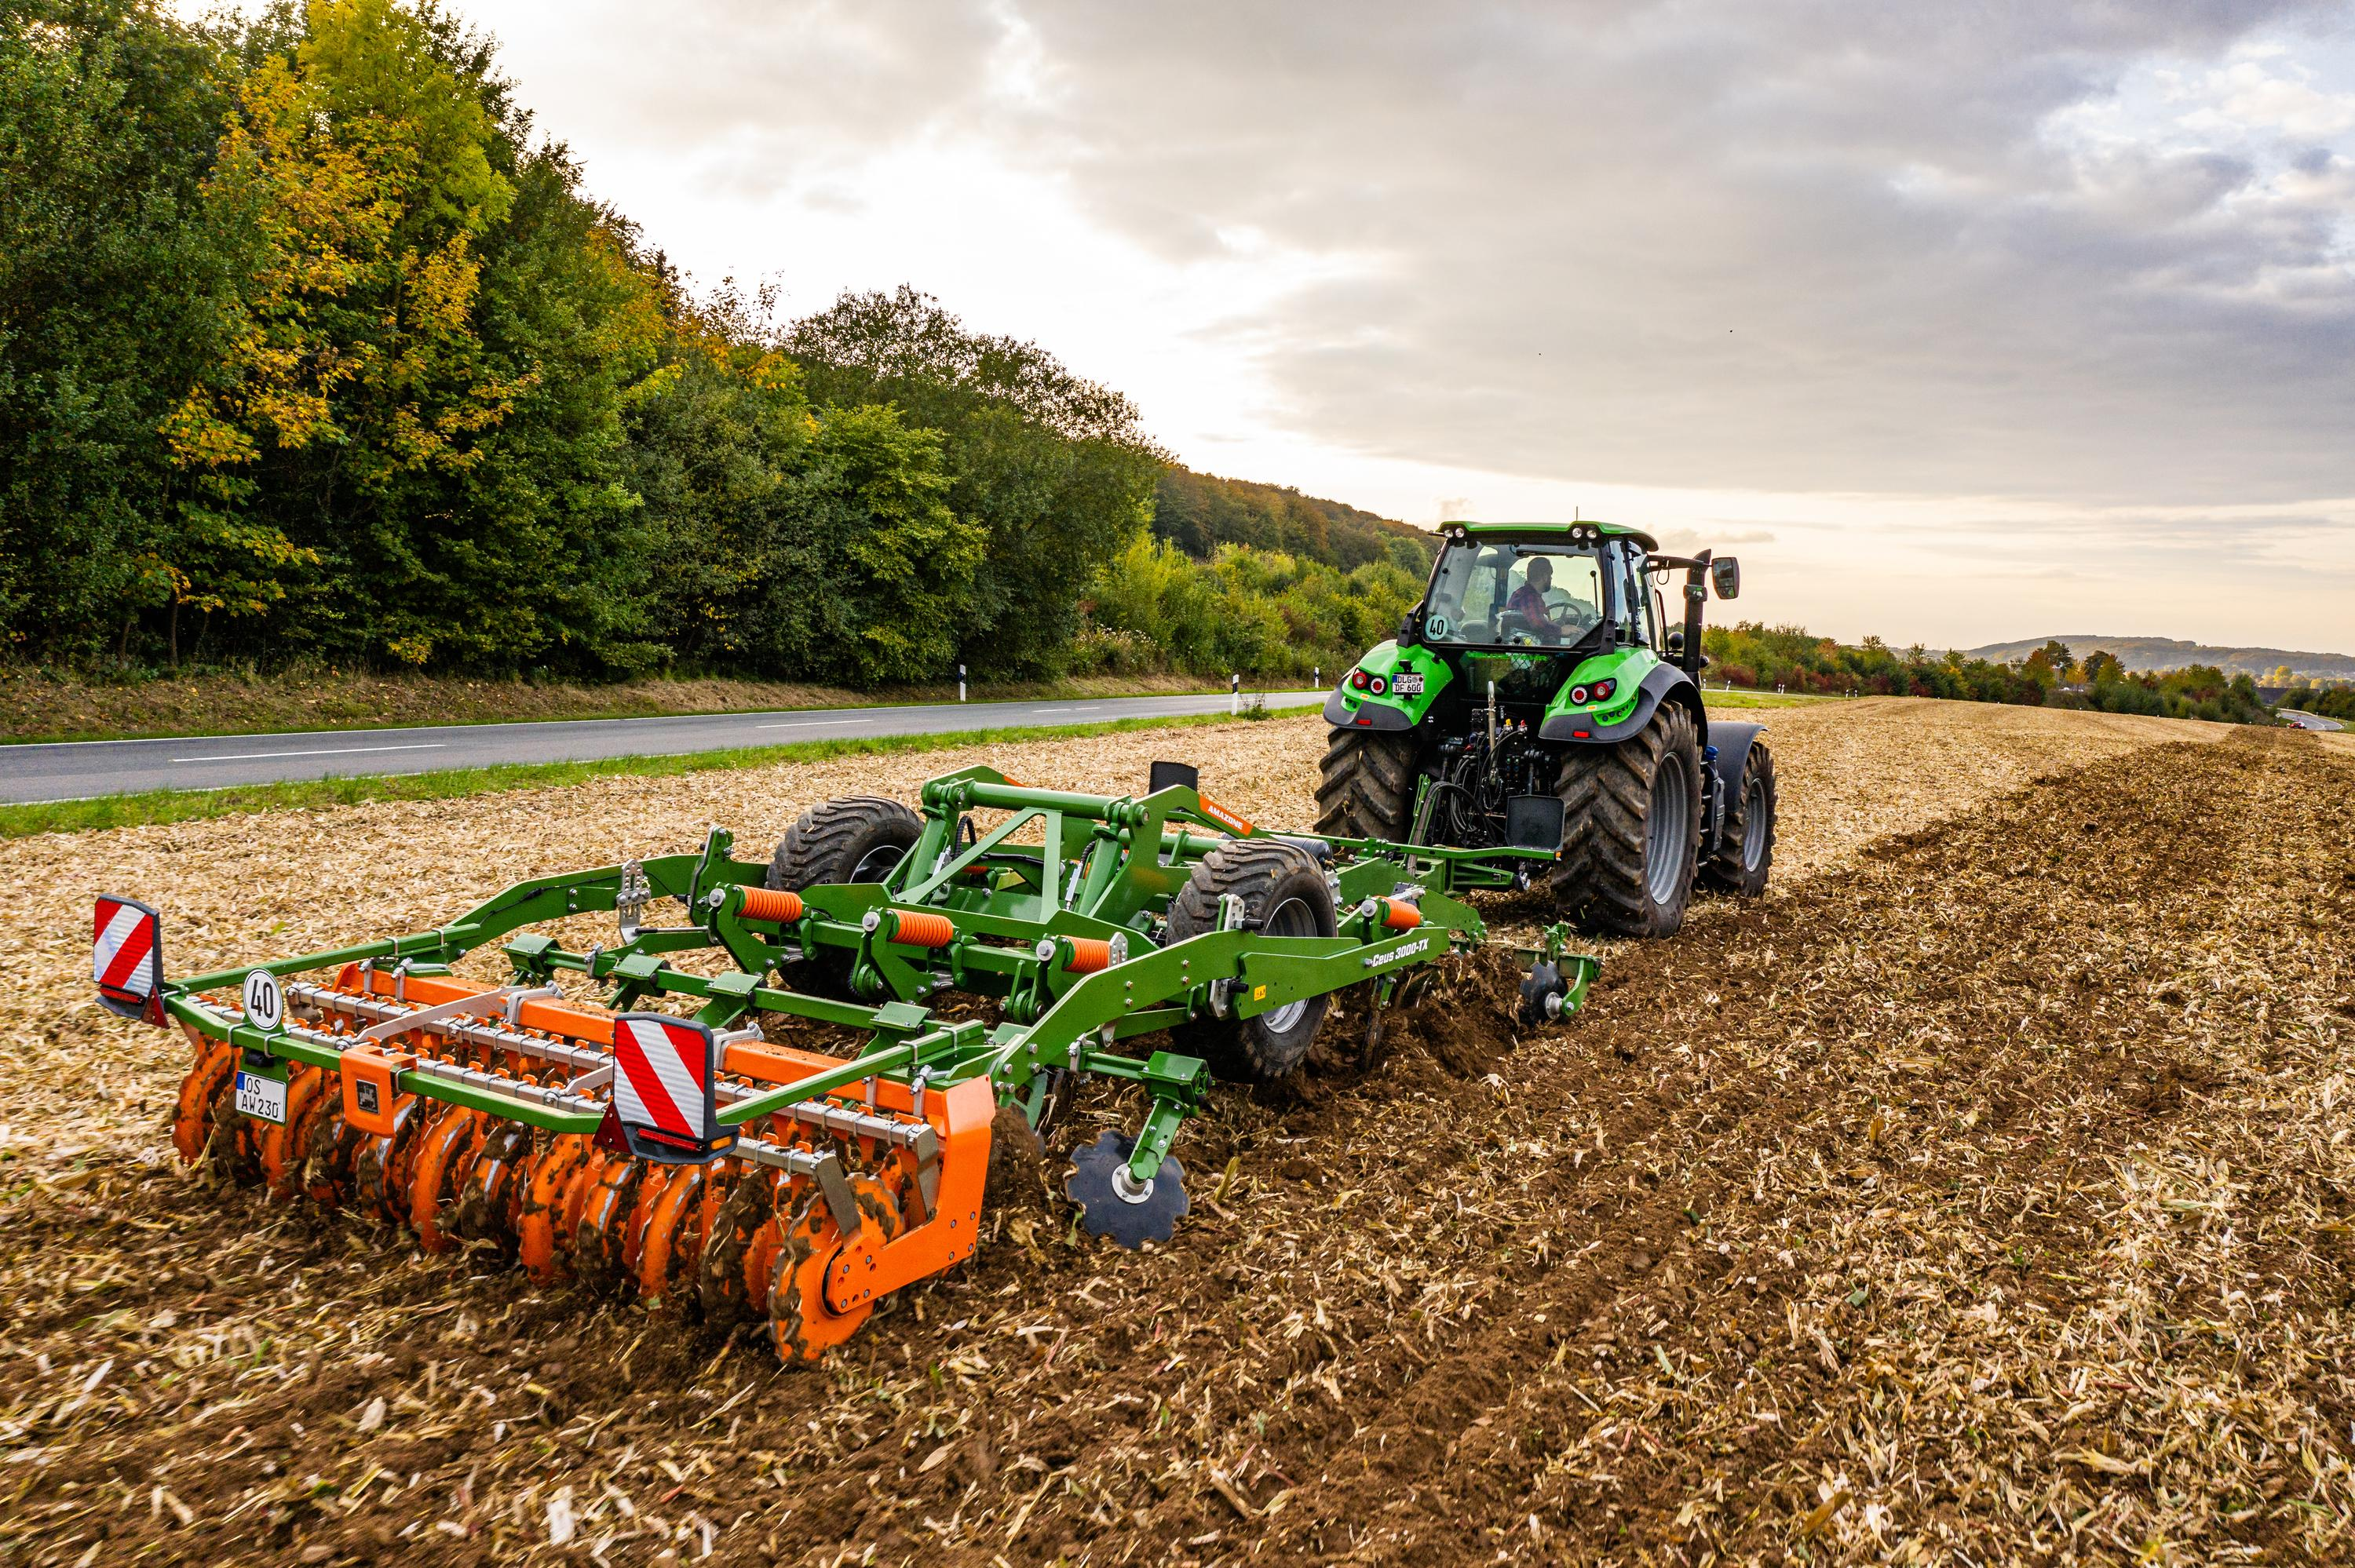 The Ceus impresses with its precision and versatility on both stubble and primary soil tillage, deep loosening and seedbed preparation, especially where large quantities of organic matter prevail.